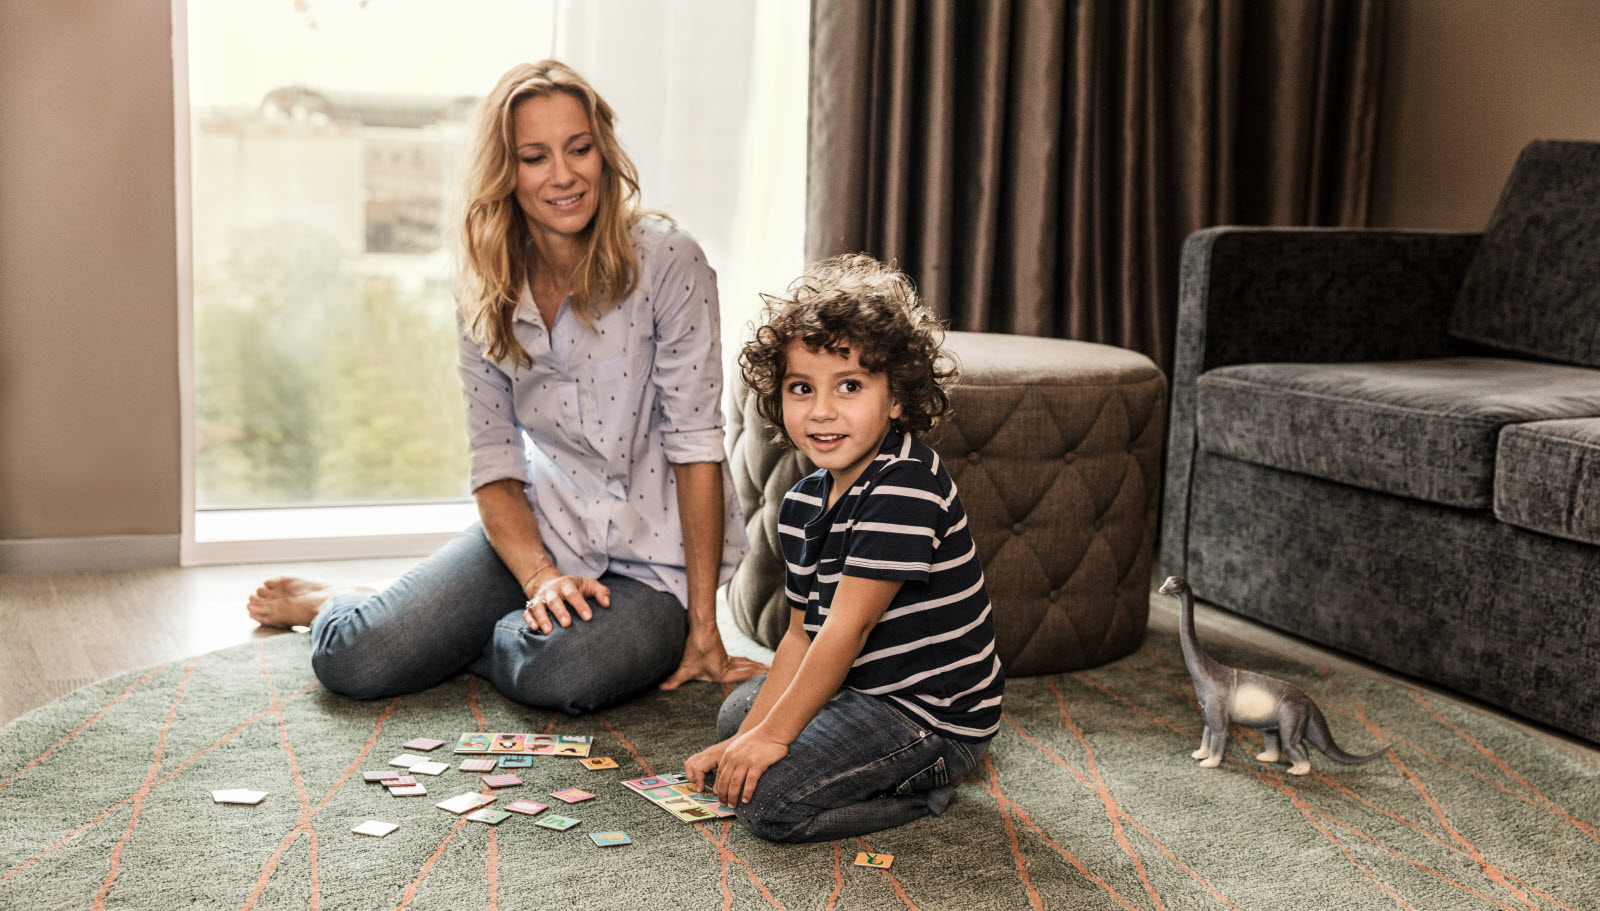 Mother and child sitting on the floor